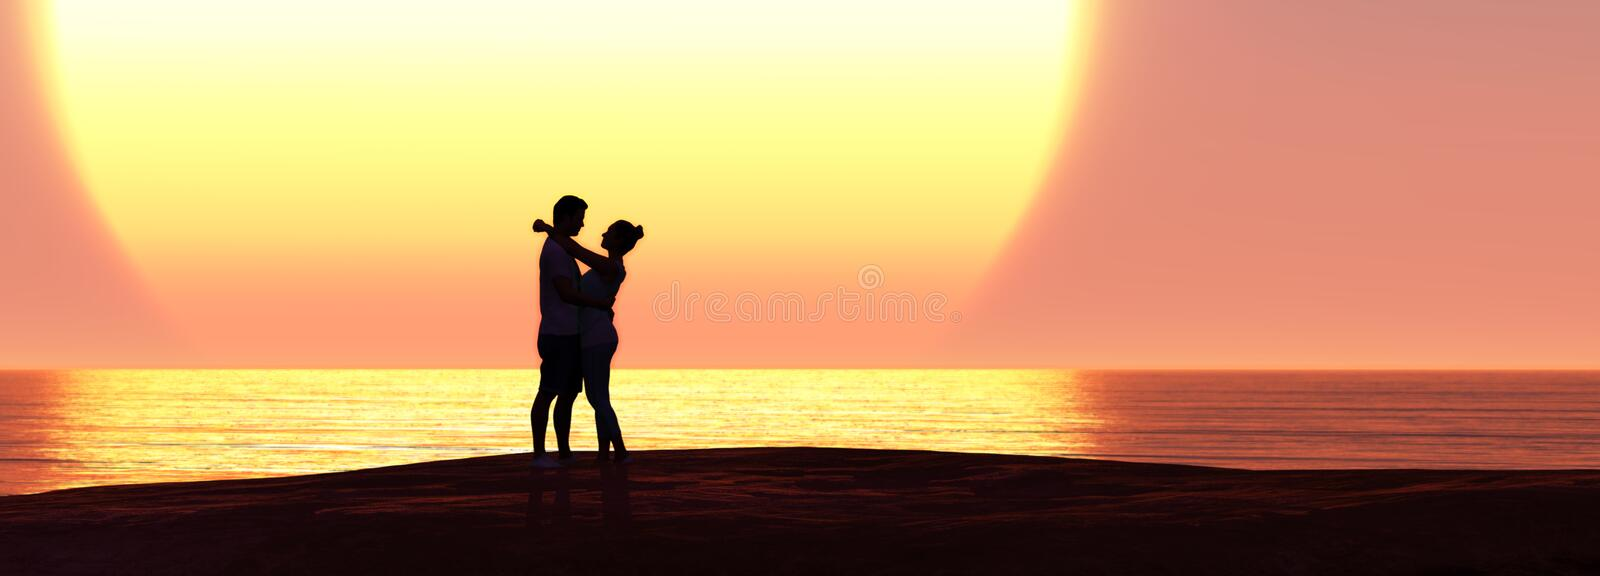 Man and woman. 3d illustration man and woman in love and sunset, sweet, friendship, relationships, passion, excitement, affectionate, joy, portrait, marriage stock illustration